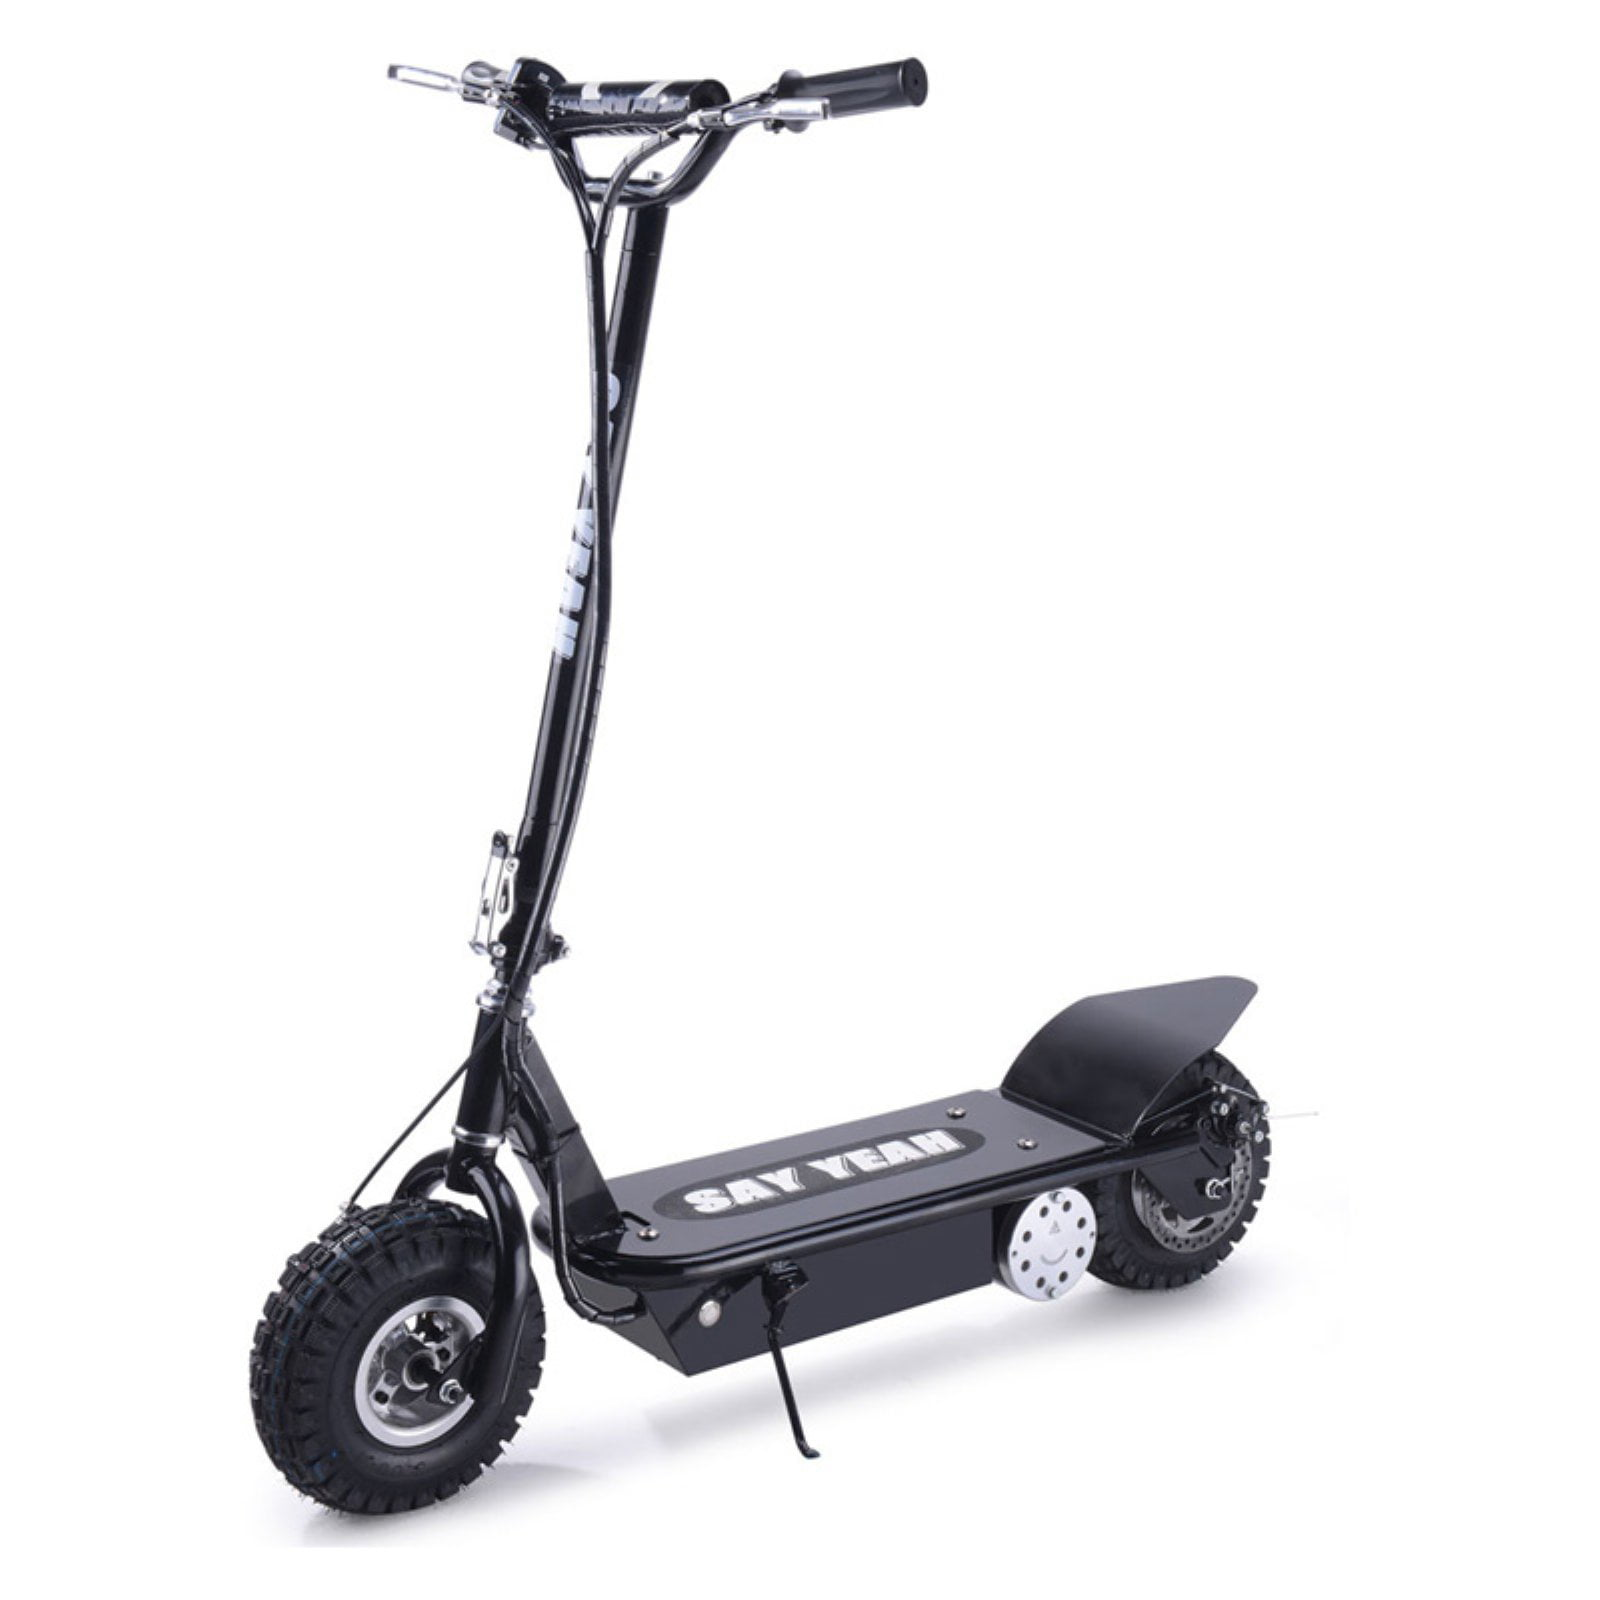 Say Yeah 800w Electric Scooter Black by Say Yeah